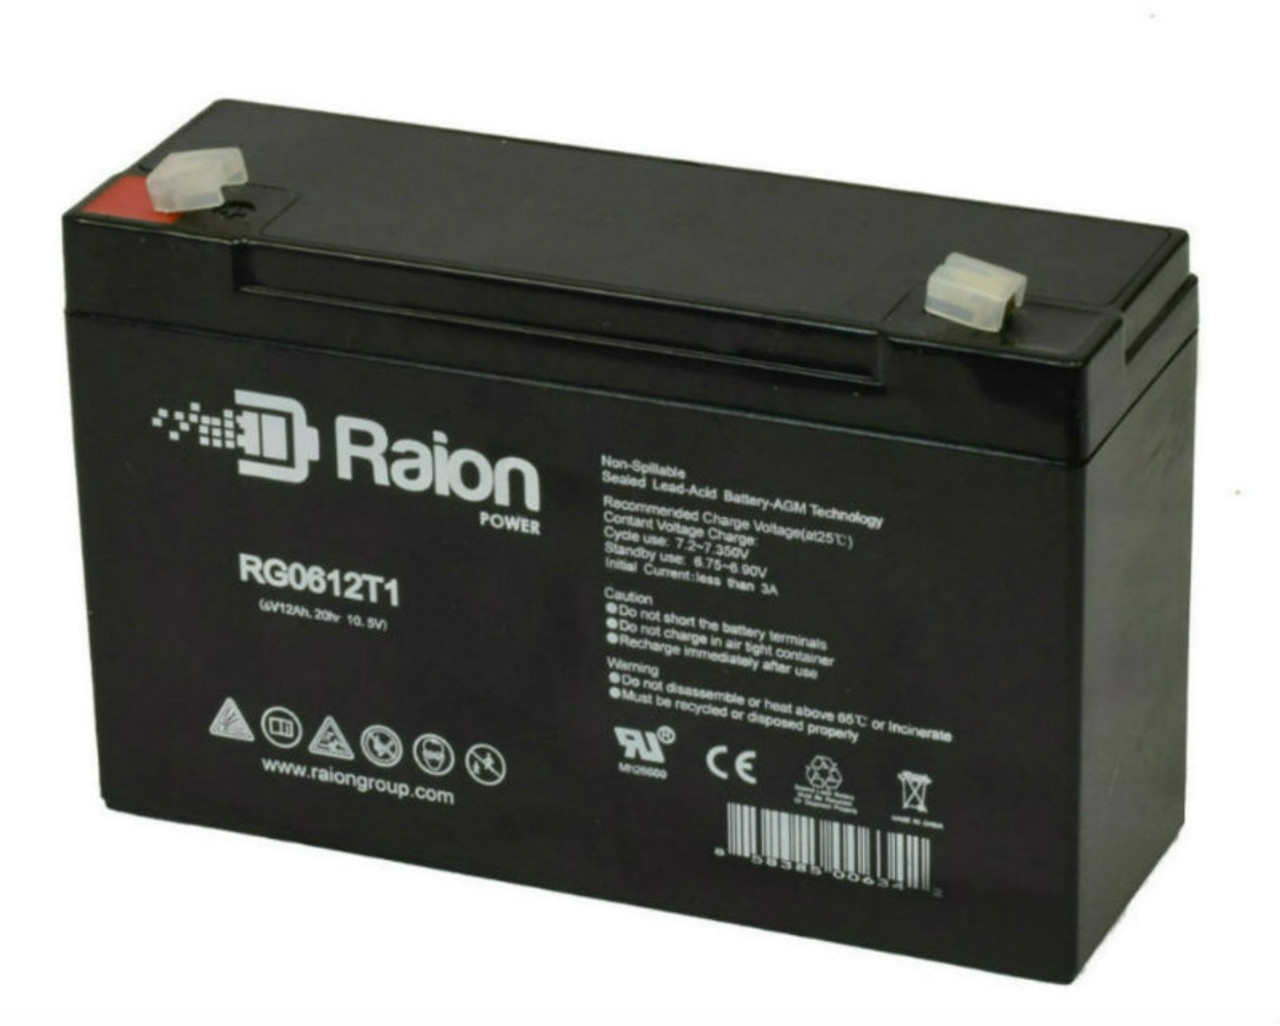 Raion Power RG06120T1 Replacement Battery Pack for Light Alarms RPG2 emergency light